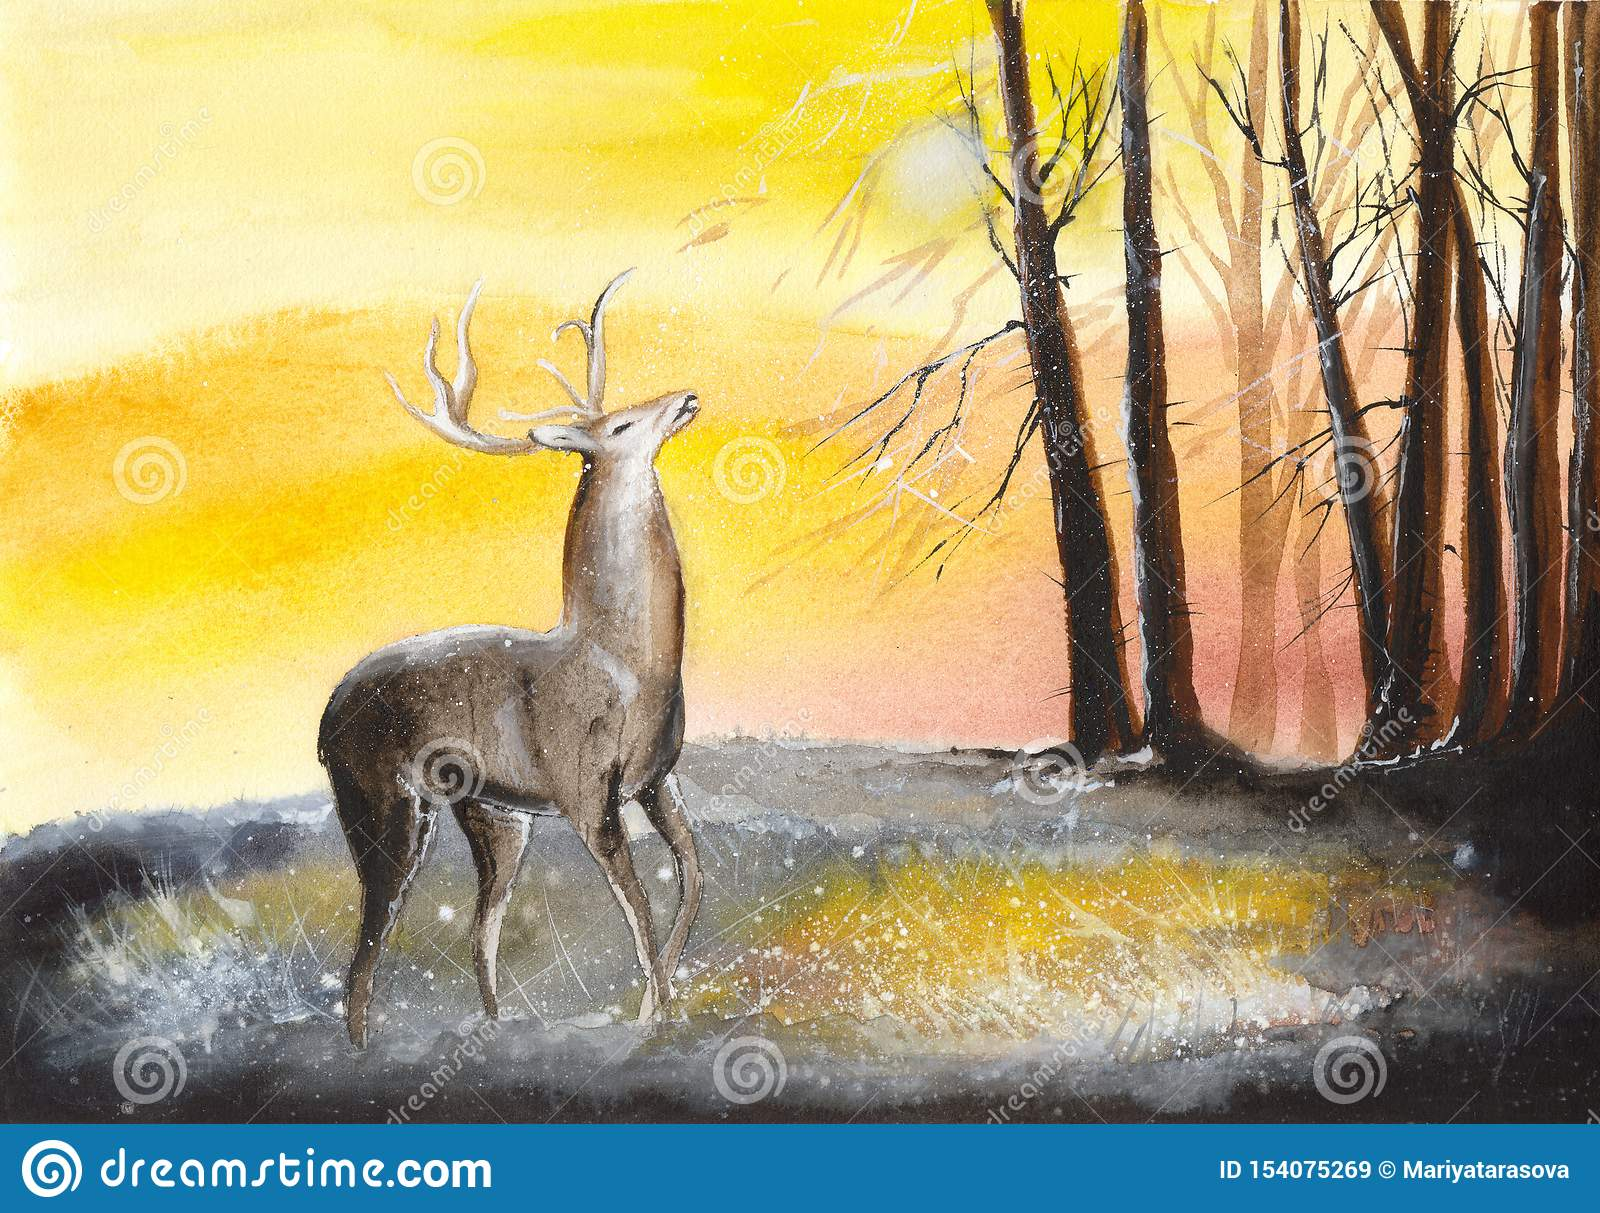 watercolor deer in forest stock illustration illustration of background 154075269 https www dreamstime com watercolor picture deer autumn forest trees yellow bachground watercolor deer forest image154075269